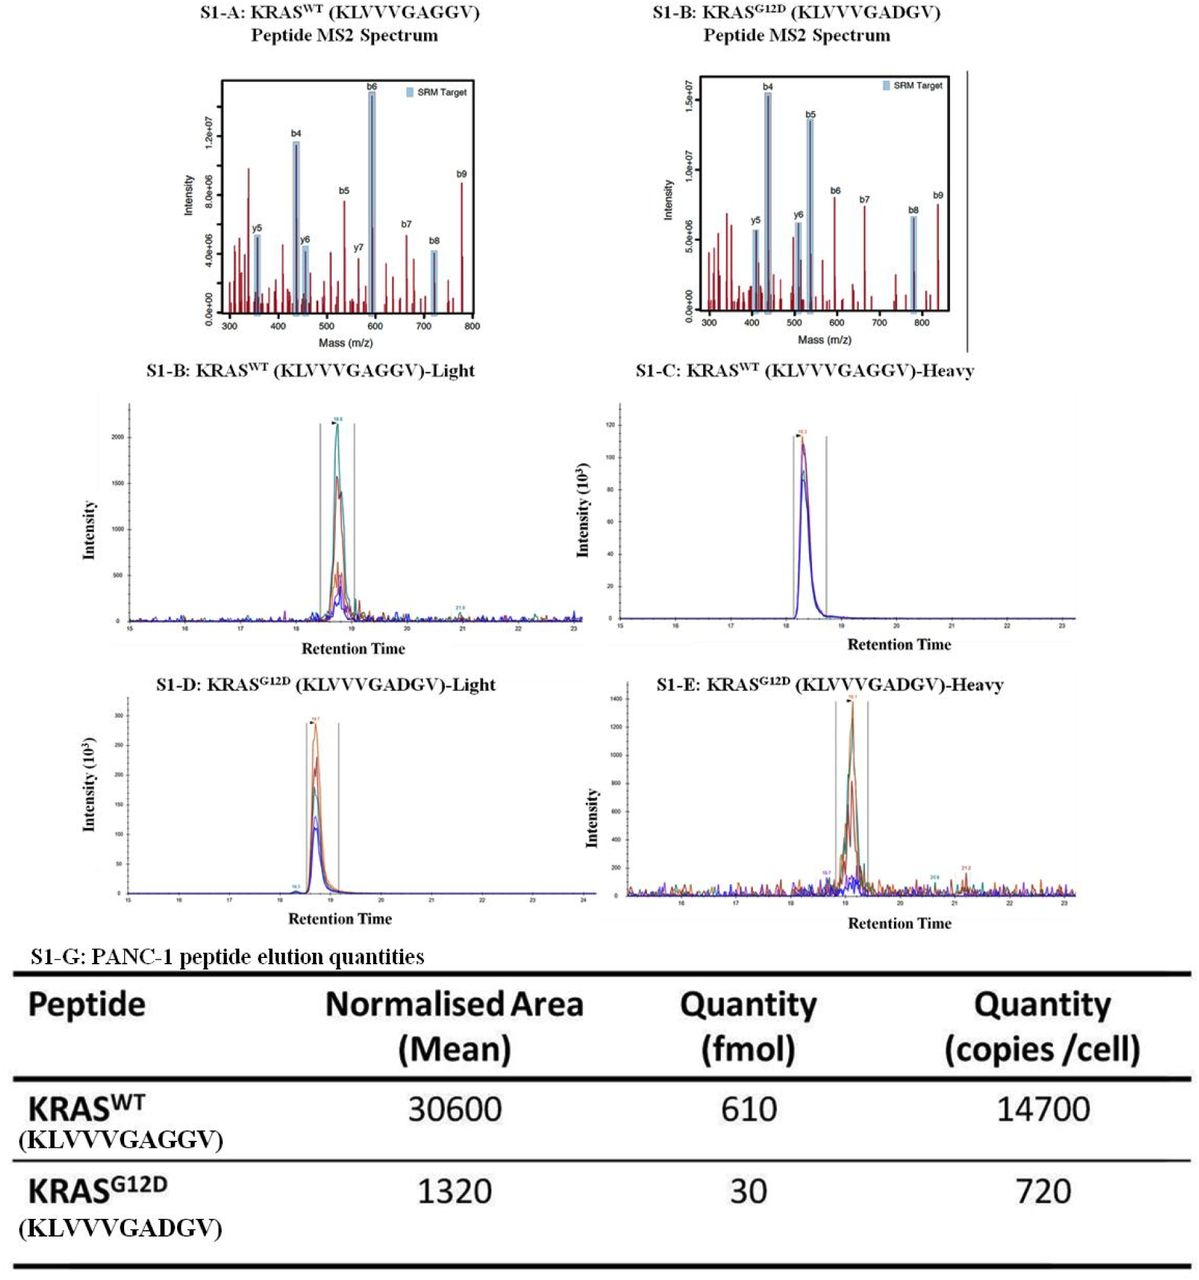 Mass spectrometry analysis of HLA-A*02:01-restricted KRAS wt (KLVVVGAGGV) and KRAS G12D (KLVVVGADGV) aa5-14 peptides eluted from PANC-1 cells. Product-ion peaks for the for KRAS wt and KRAS G12D amino-acid 5-14 peptides, respectively ( Figure S1-A, -B ). Peak areas for the synthetic peptide standard ( Figure S1-C, -D ), and the corresponding peak areas for peptide eluted from Panc1 cells ( Figure S1-E, -F ). The area values and quantities of both KRAS WT and KRAS G12D -specific HLA*02:01-restricted peptides eluted off PANC-1 cells ( Figure S1-G ). Although it was less abundant than the KRAS wt peptide, the HLA-A*02:01-restricted KRAS G12D peptide can be naturally processed and presented by cells which carry the KRAS G12D mutation and the HLA-A*02:01 allele.